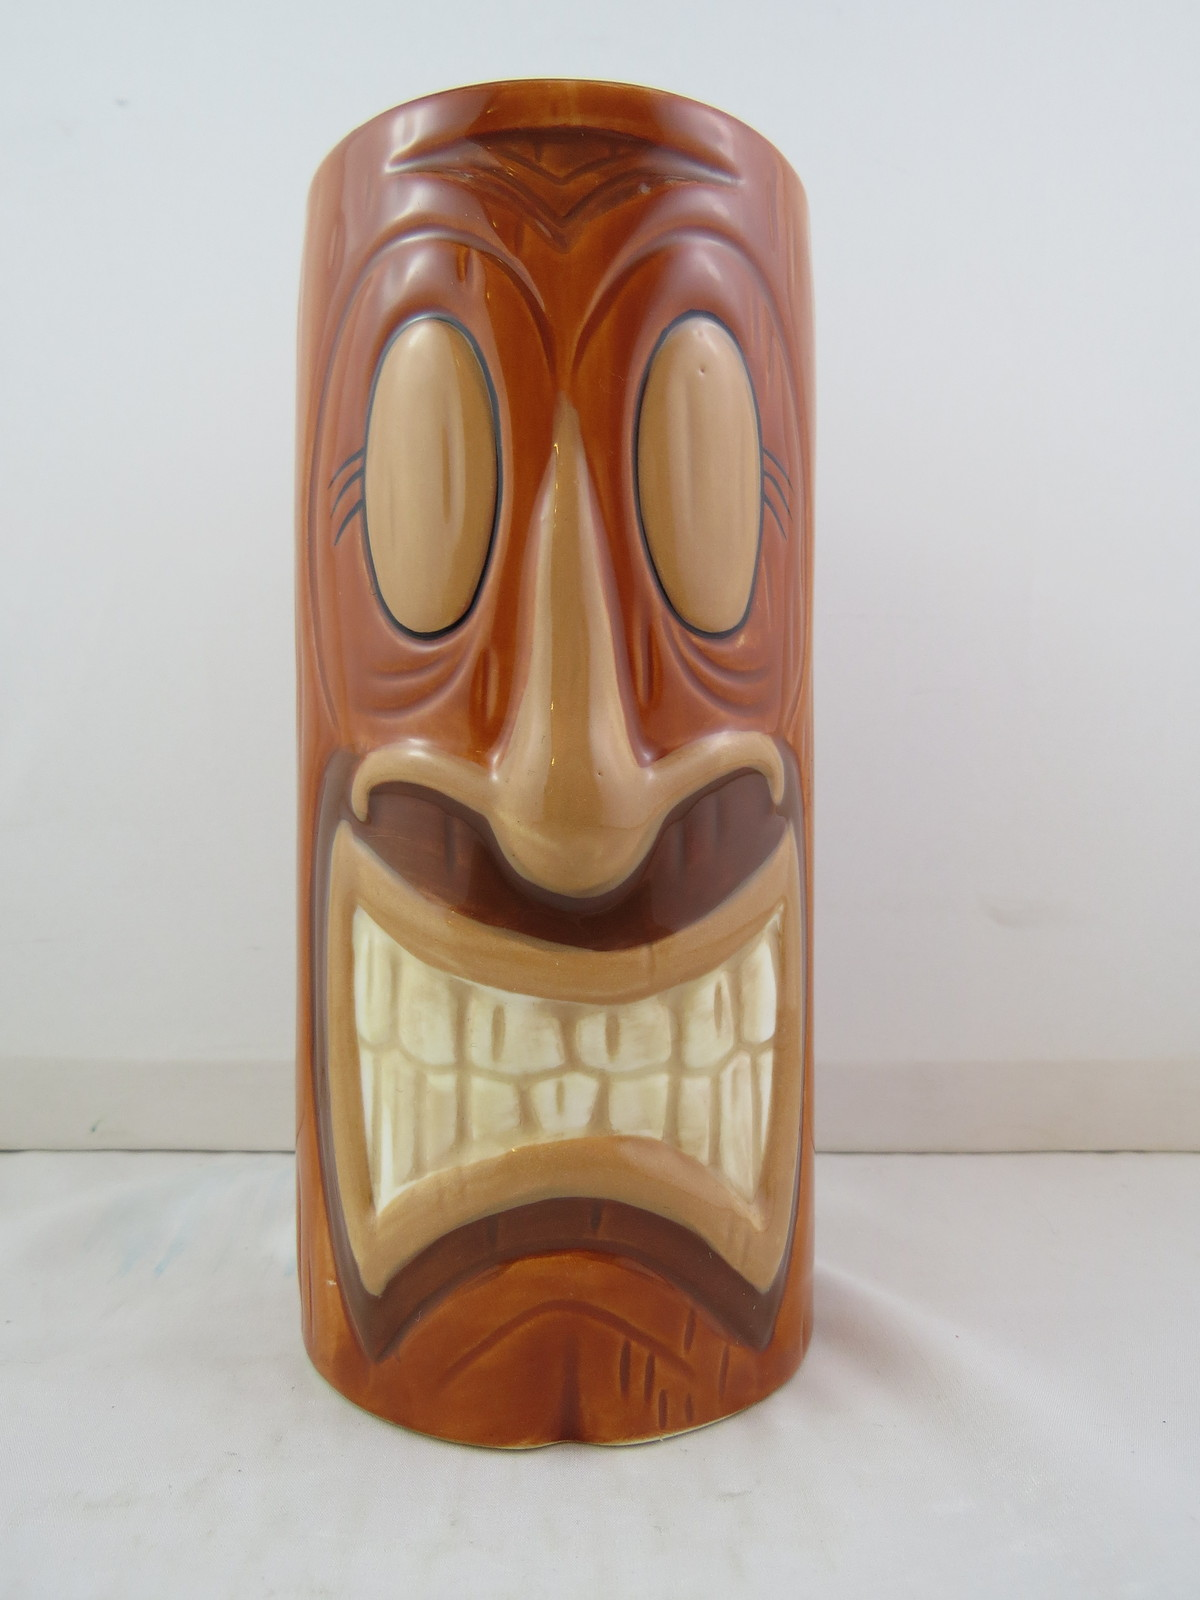 Primary image for The Big Tappa Ru Tiki Mug - By KC Co. Ltd - Ceramic Tiki Mug